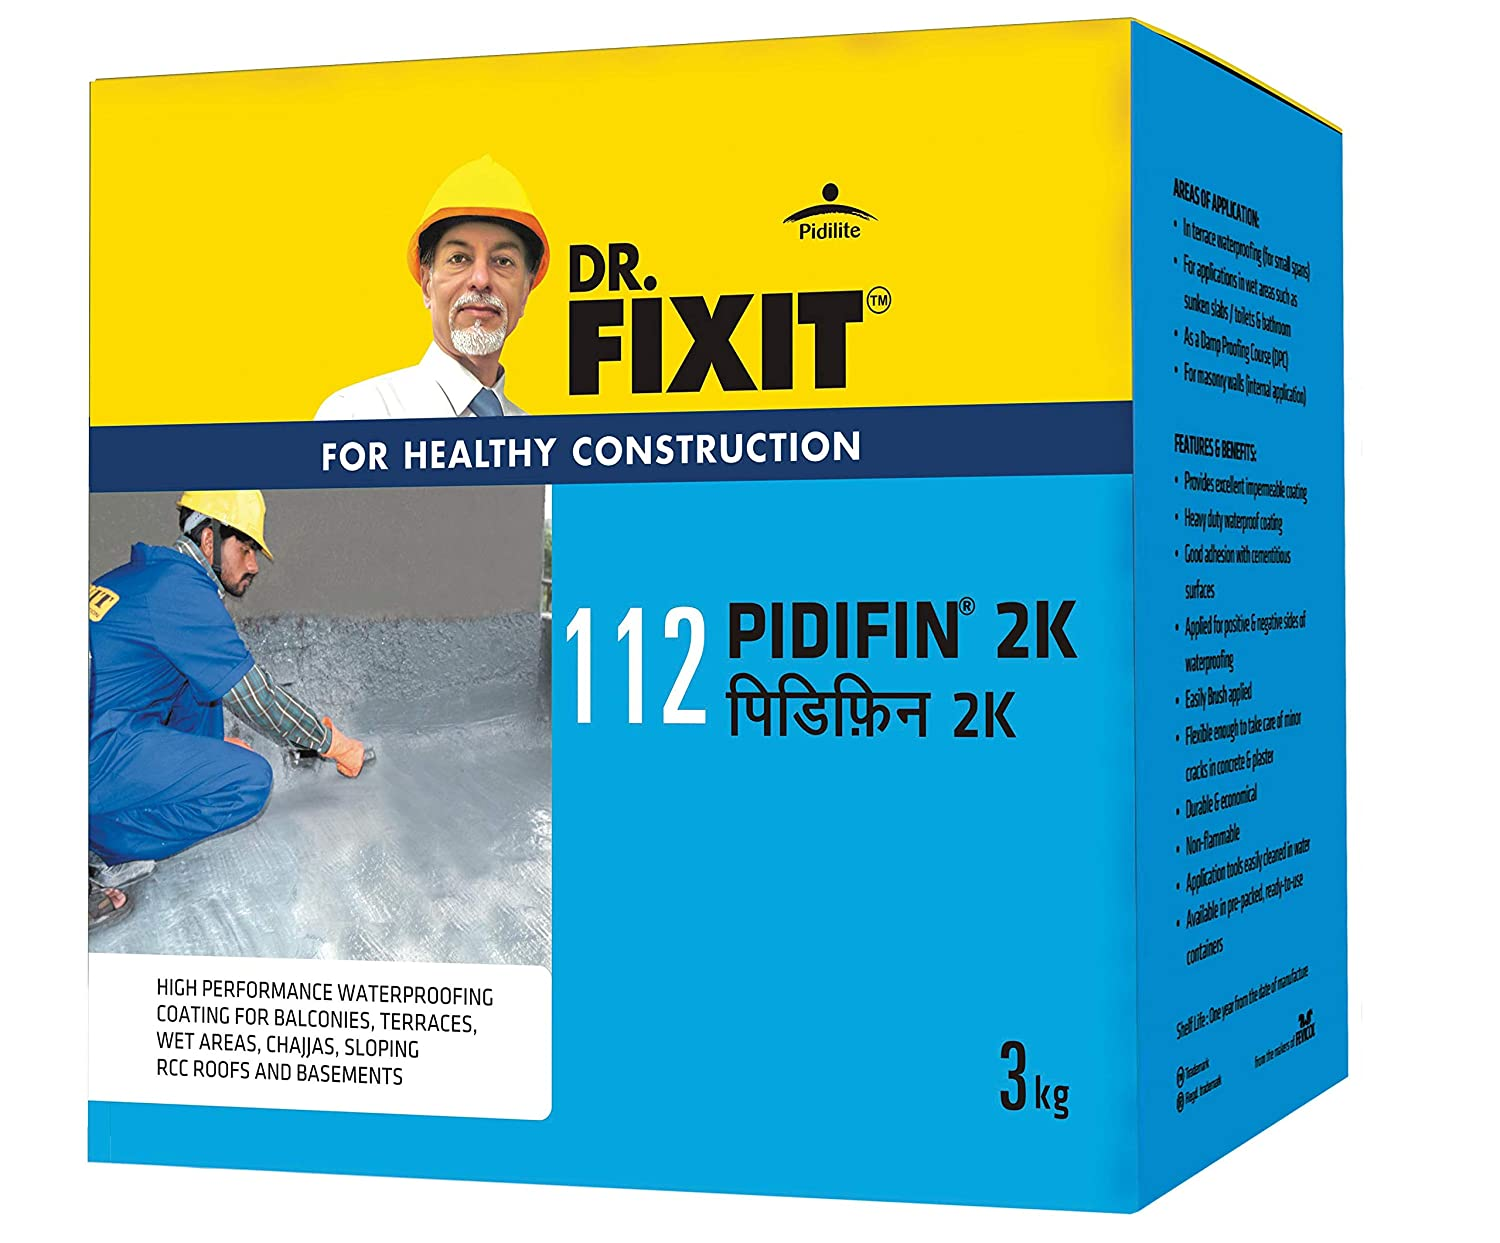 Dr. Fixit Pidifin 2K Bathroom Waterproofing 30KG